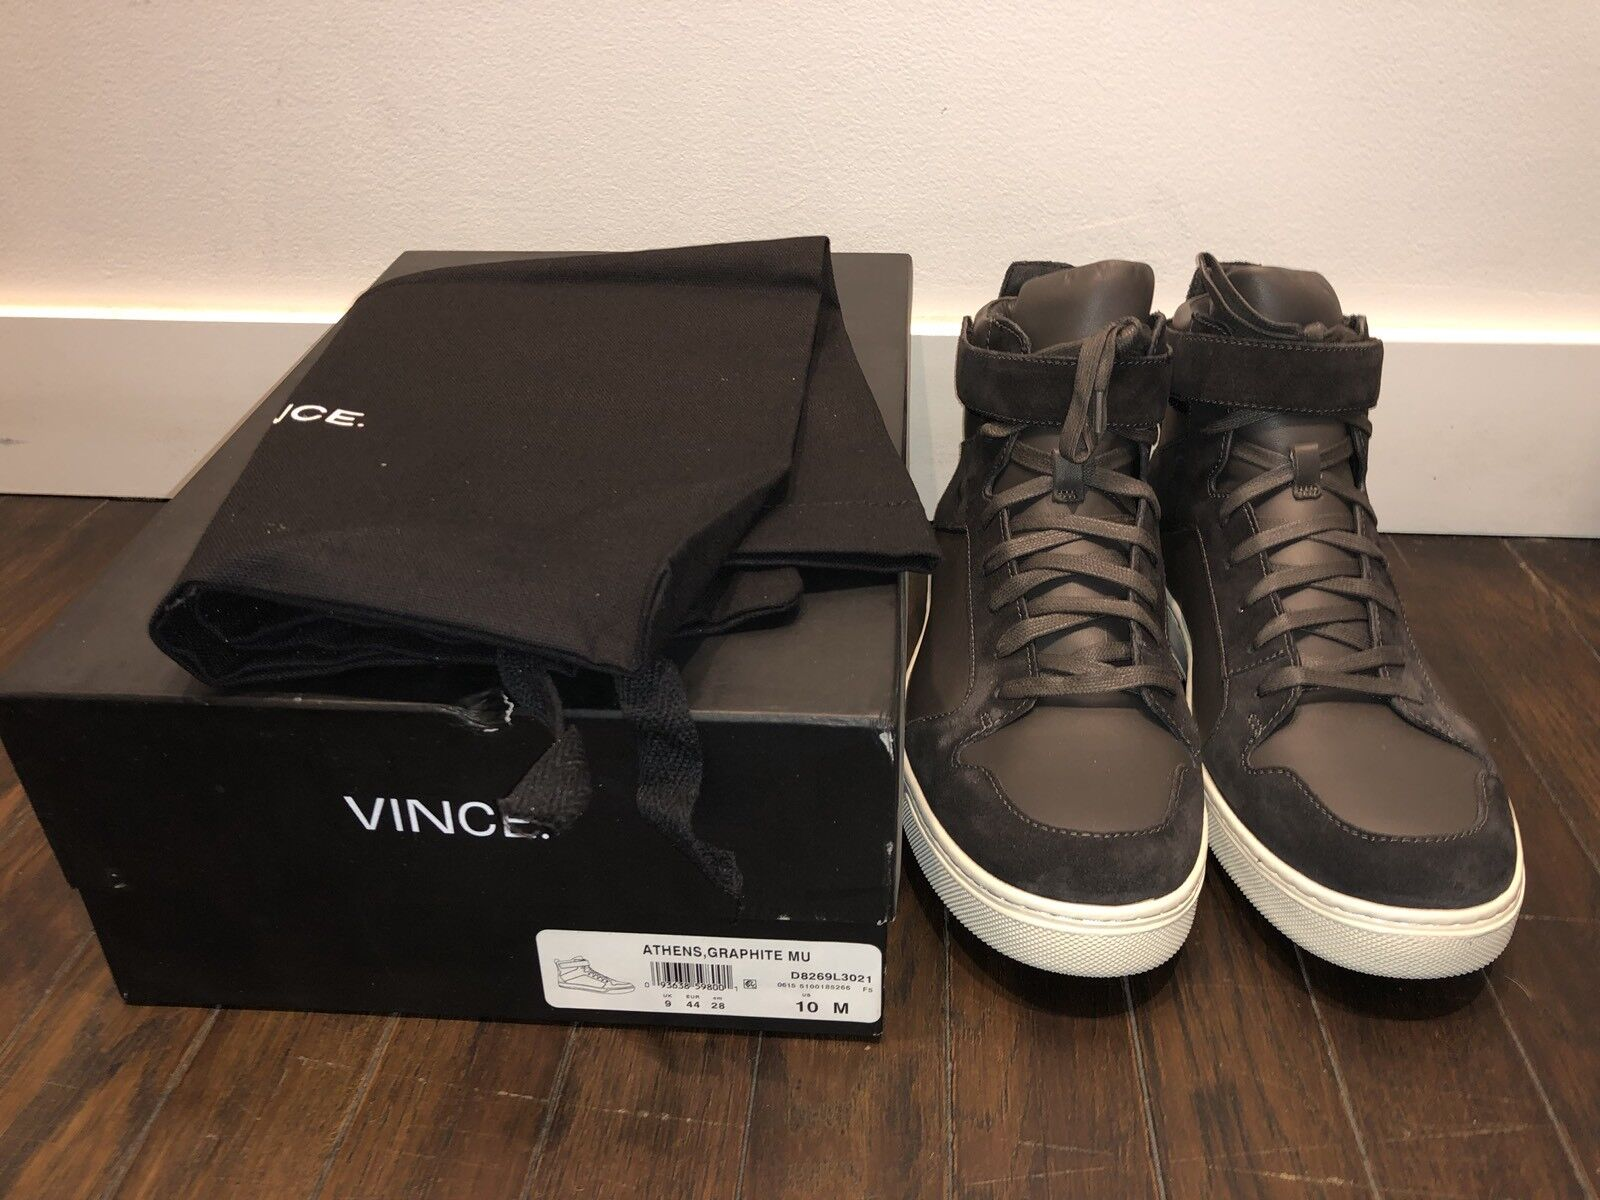 VINCE Athens Hightop Sneakers Size 10 M  RETAIL  375 New In Box free ship